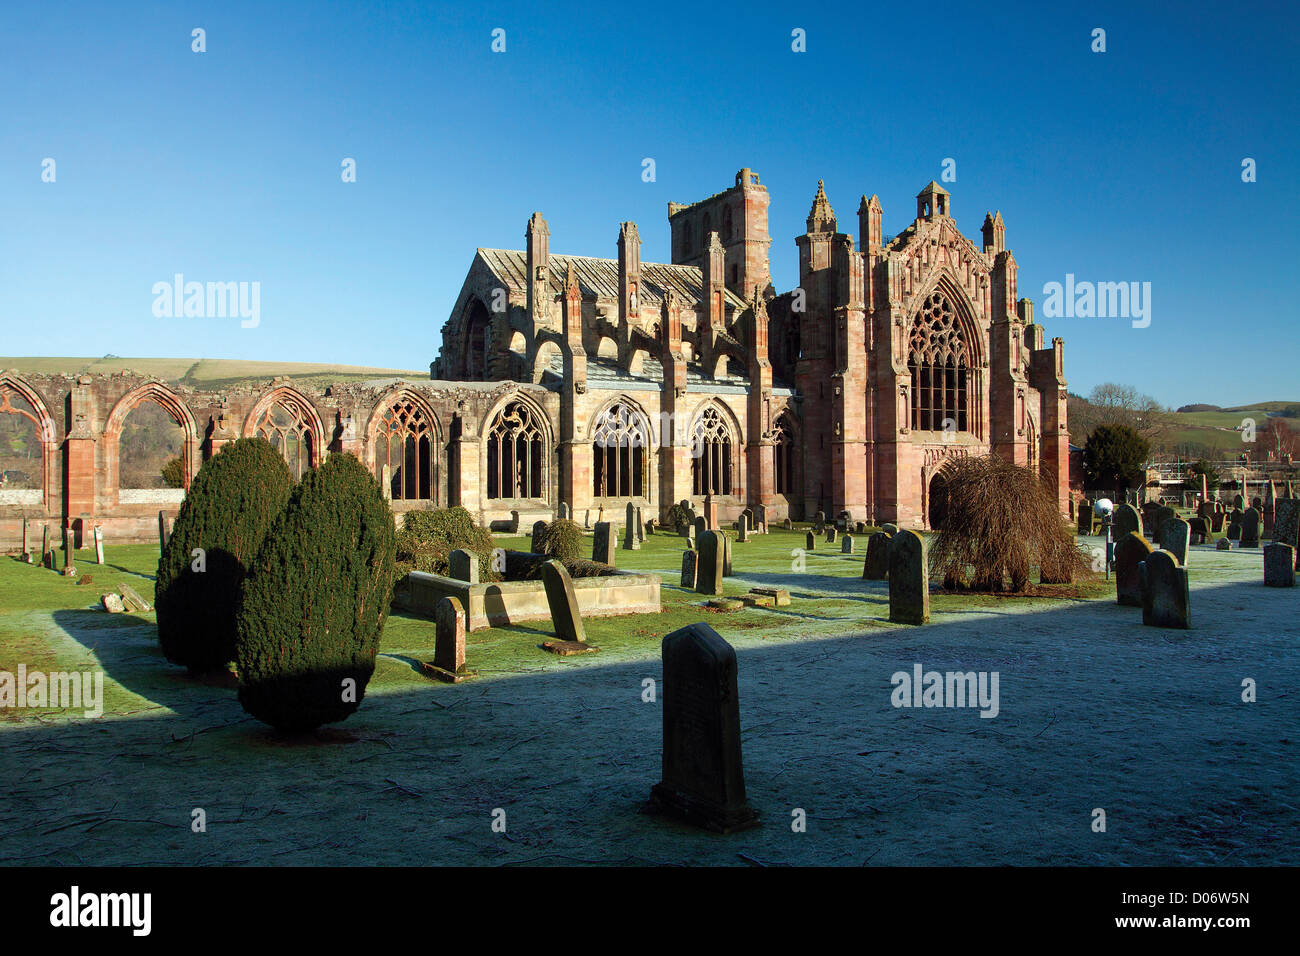 Melrose Abbey, Melrose, Scottish Borders - Stock Image